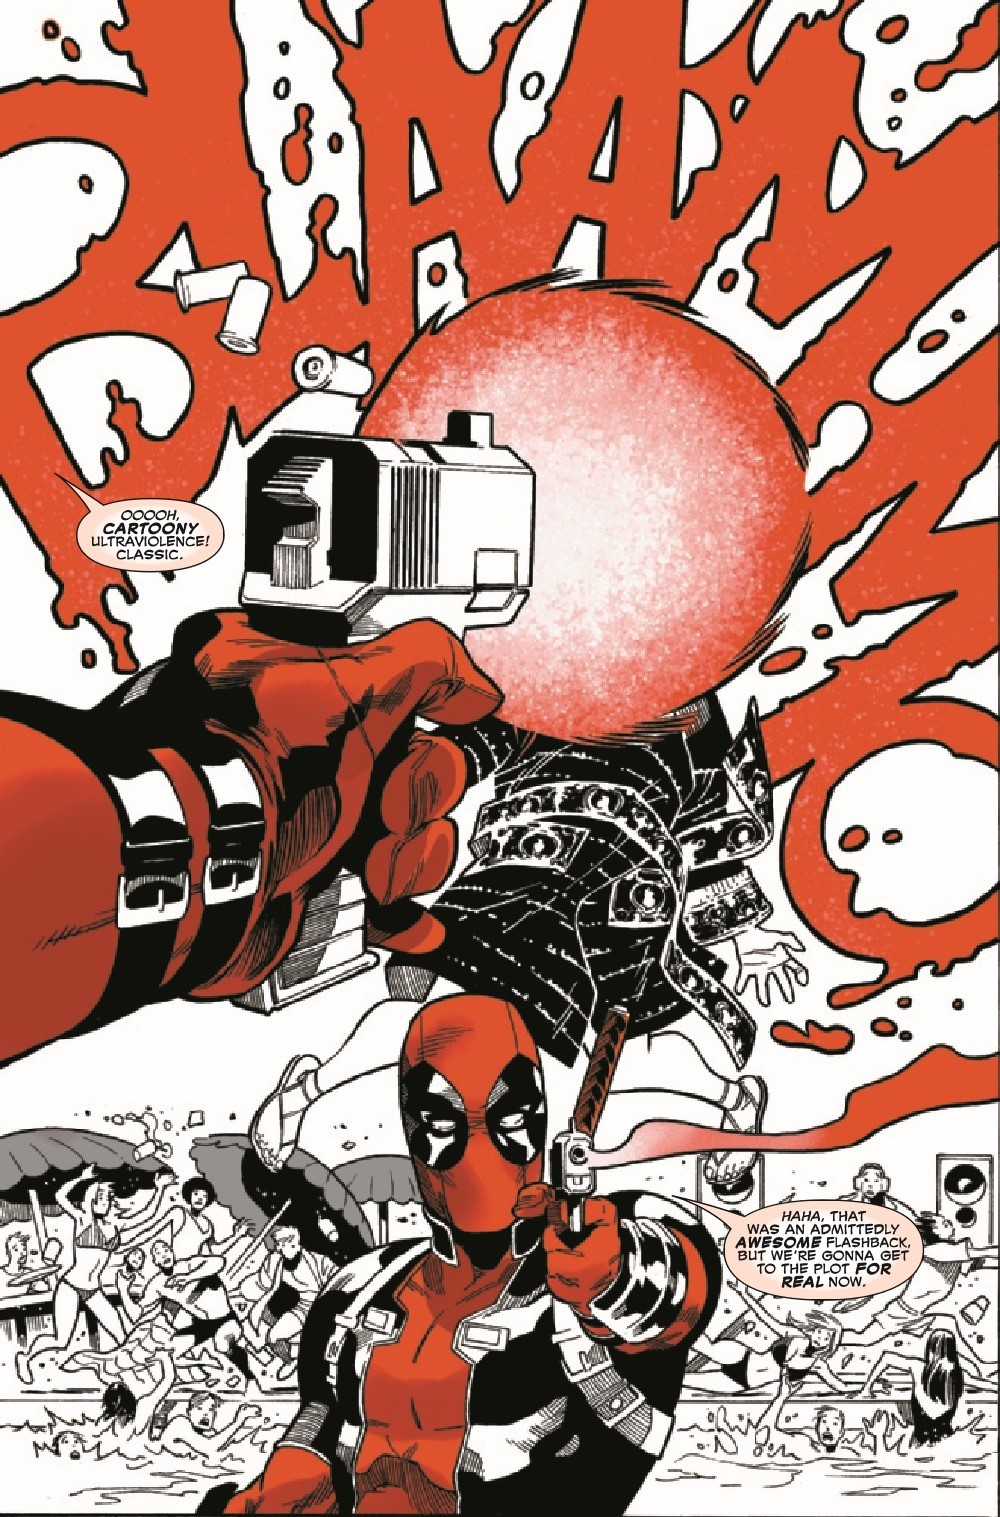 DPOOLBLKWHBL2021002_Preview-5 ComicList Previews: DEADPOOL BLACK WHITE AND BLOOD #2 (OF 4)